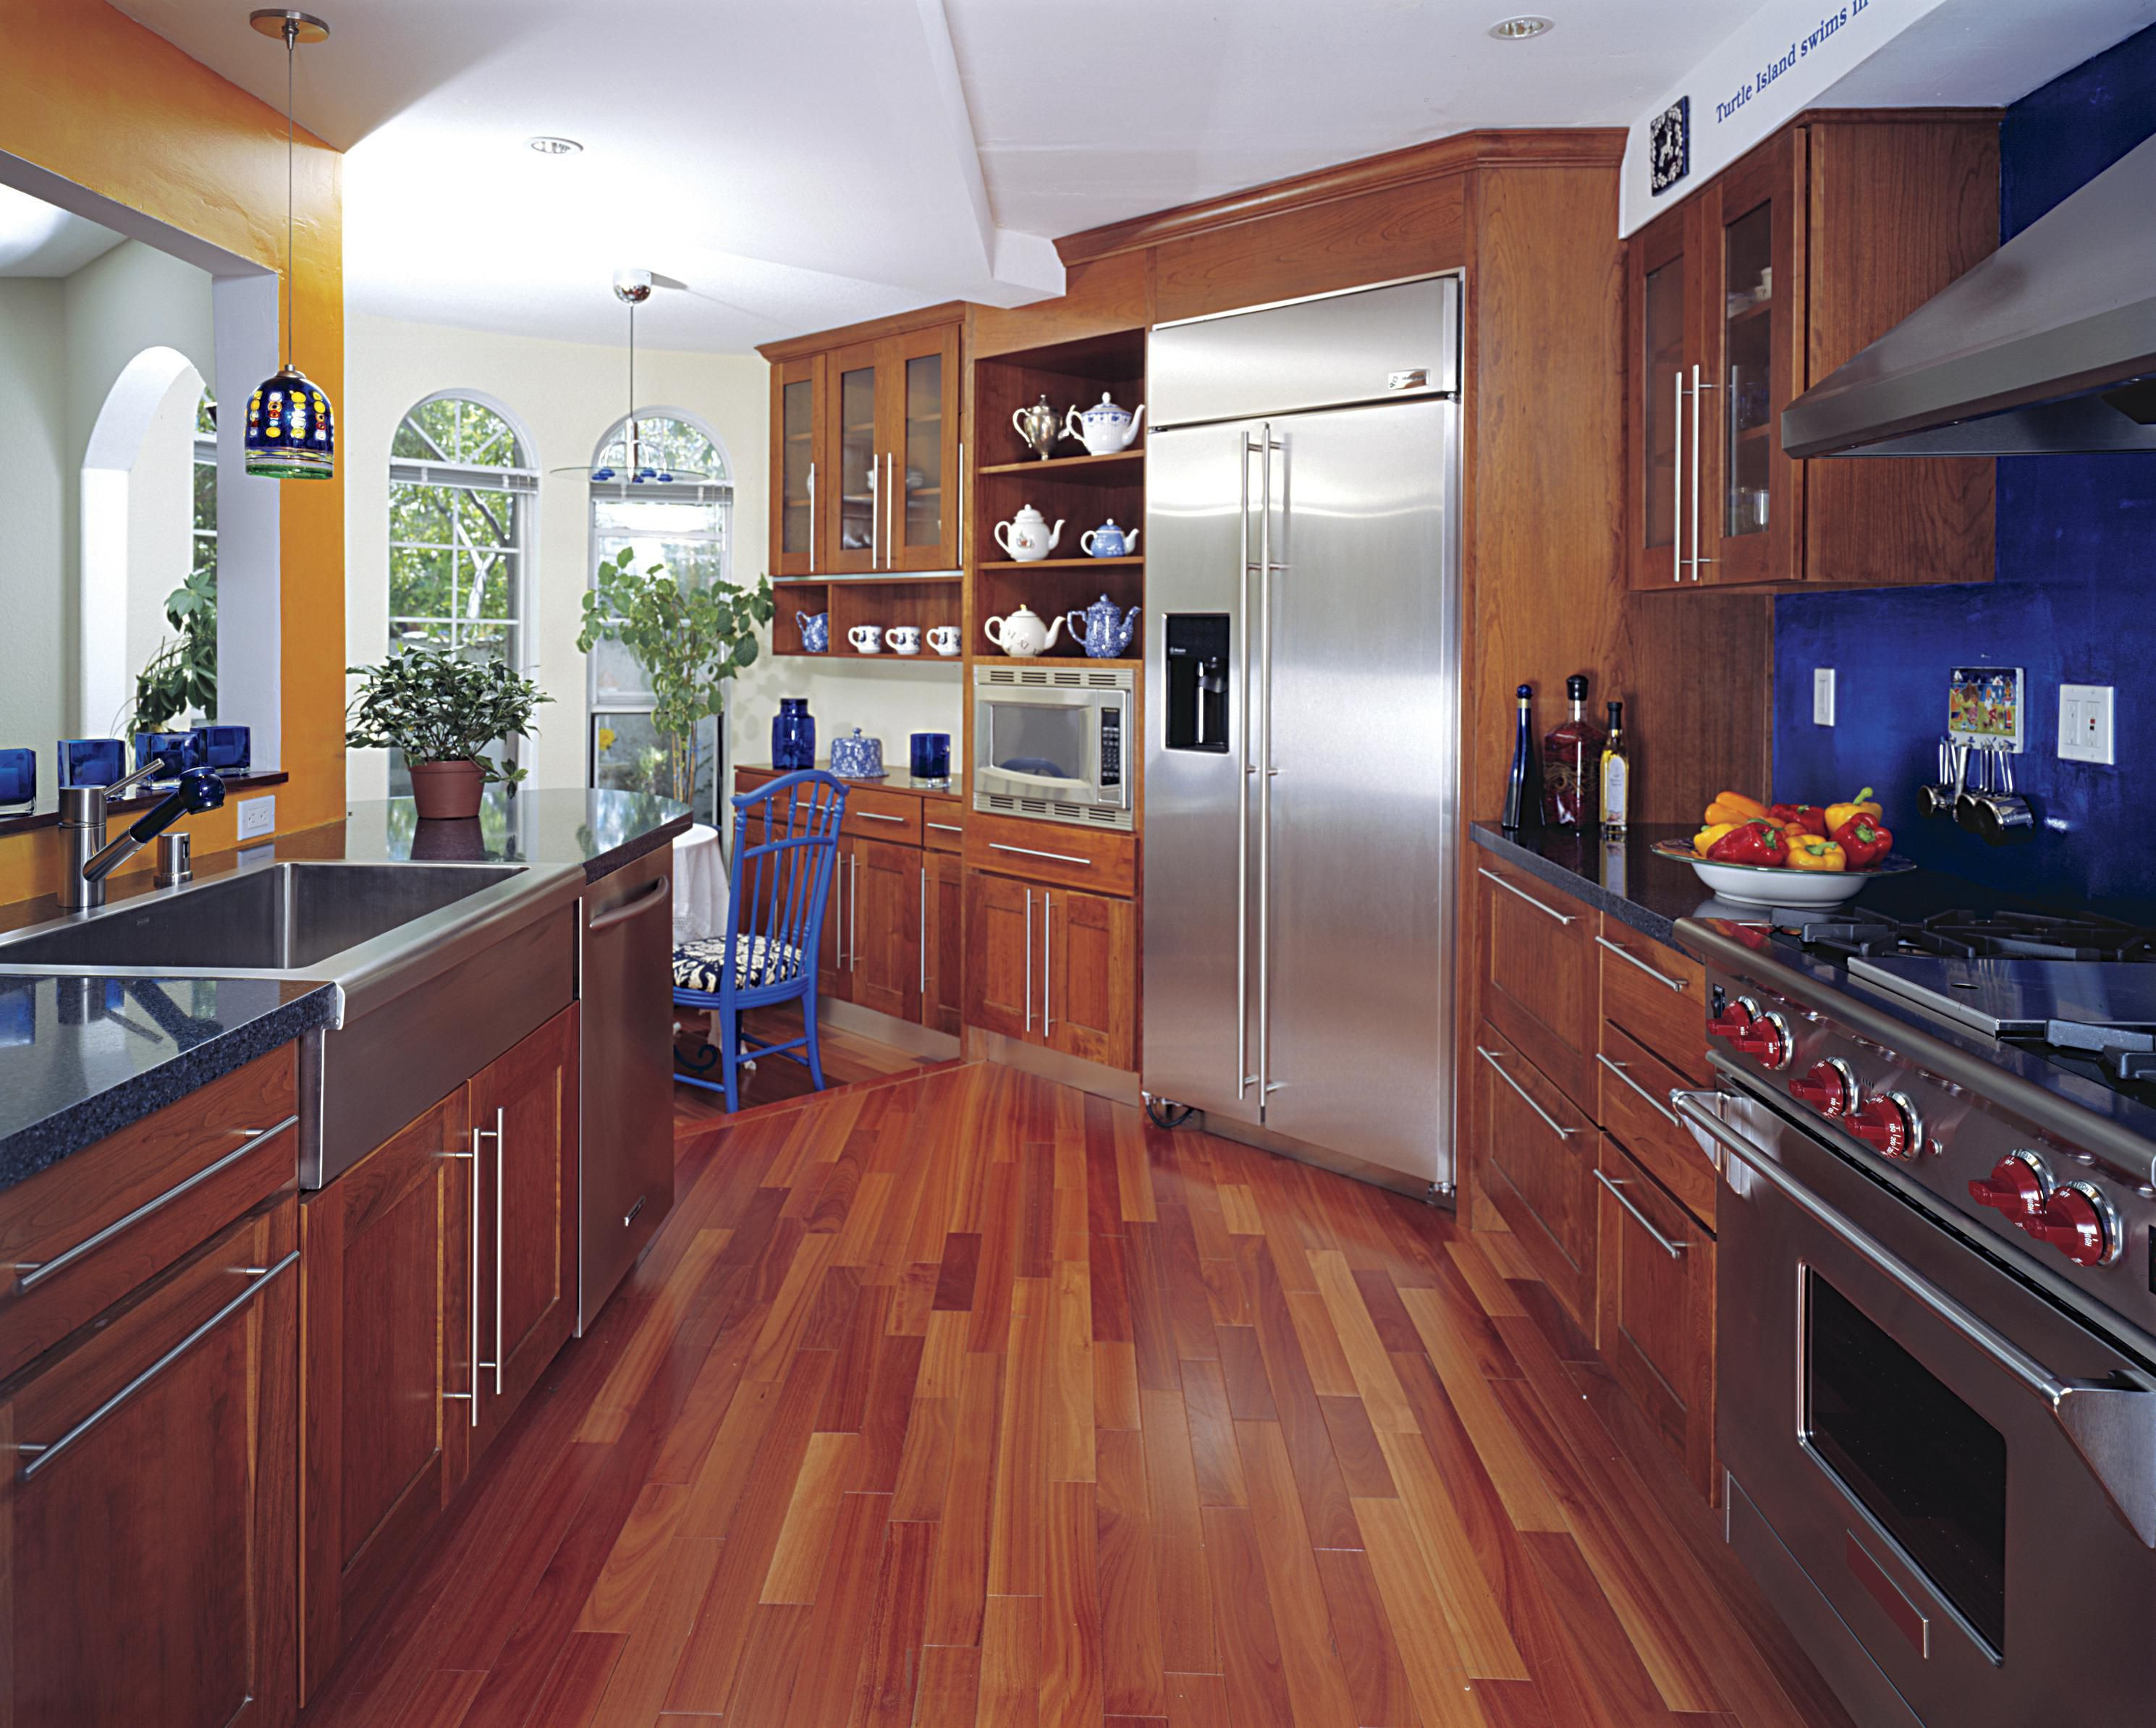 hardwood floor gouge repair of hardwood floor in a kitchen is this allowed throughout 186828472 56a49f3a5f9b58b7d0d7e142